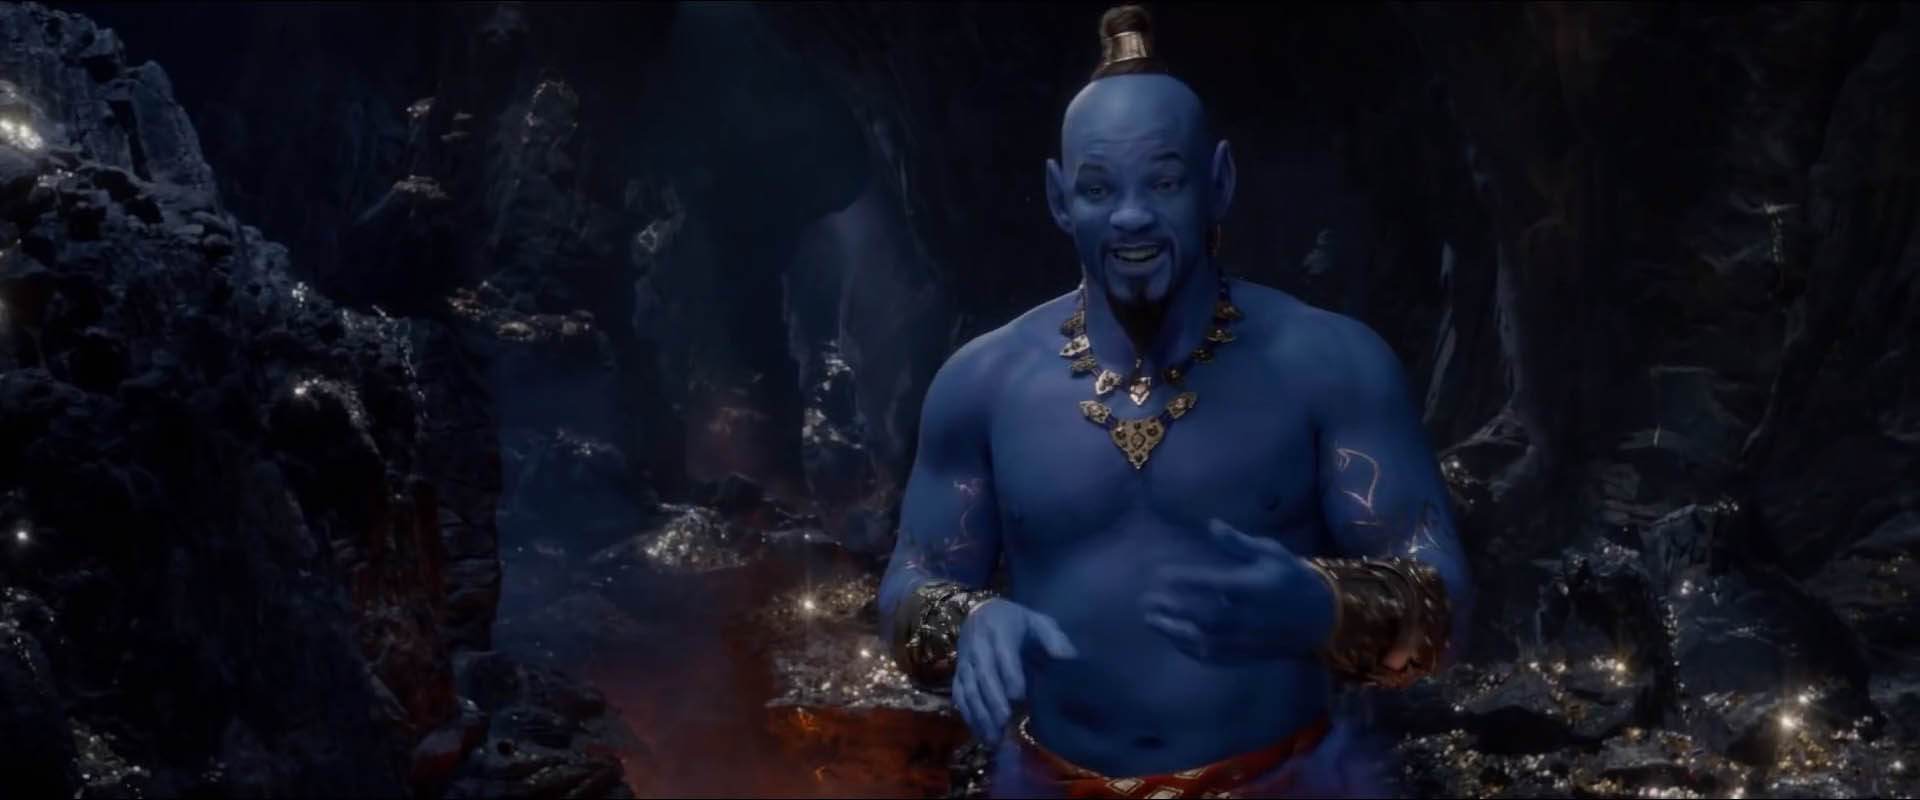 Aladdin Trailer Finally Shows Off The Blue Genie And